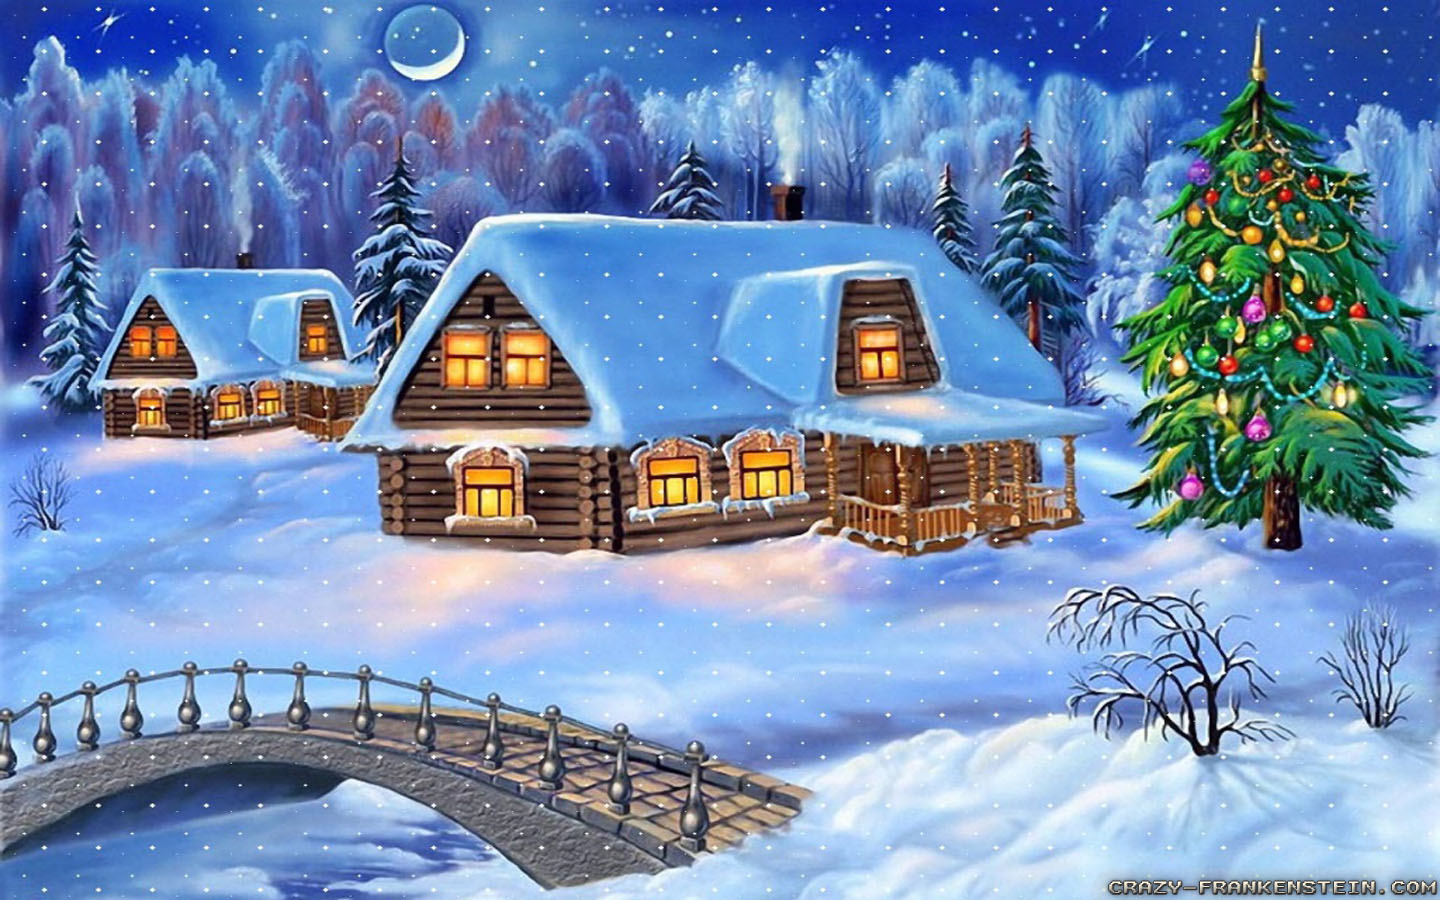 Fantasy winter cabin in snow wallpaper 1440x900 1440x900